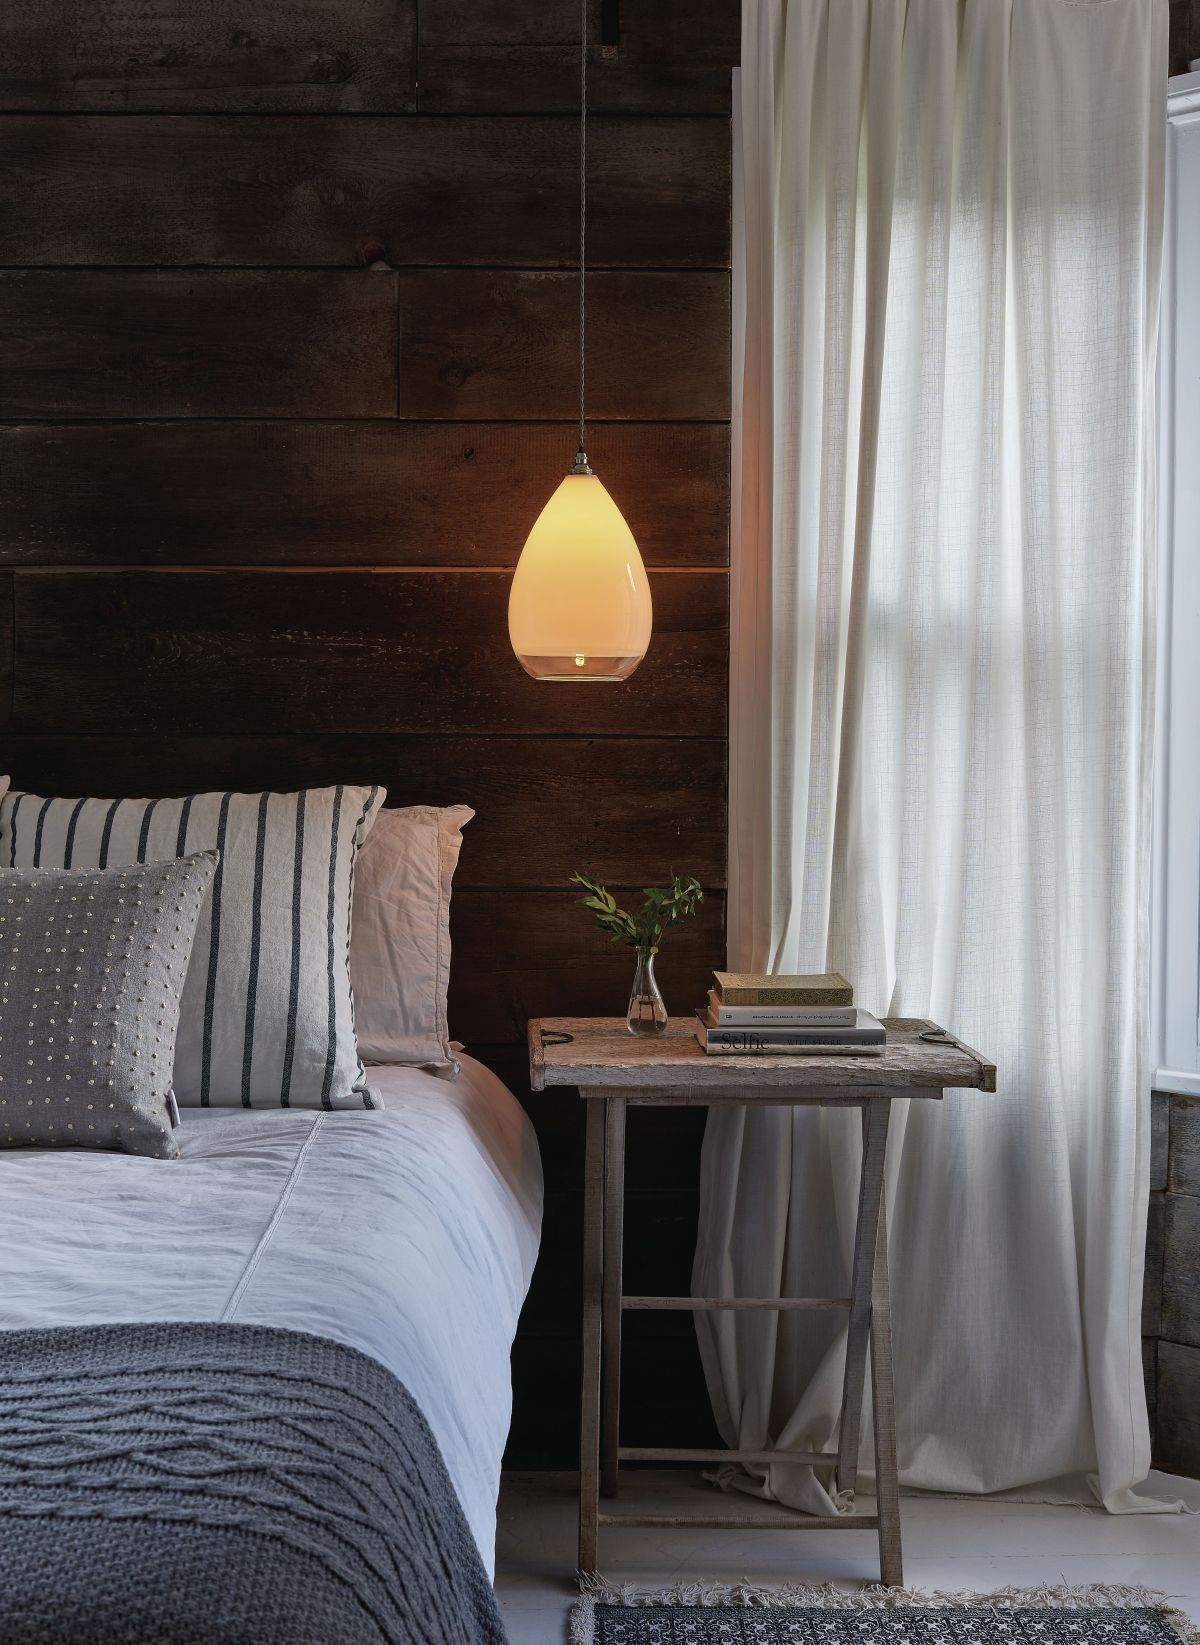 Lighting Schemes For Bedrooms Real Homes Related Links More Circuit About Dimmer Lamps